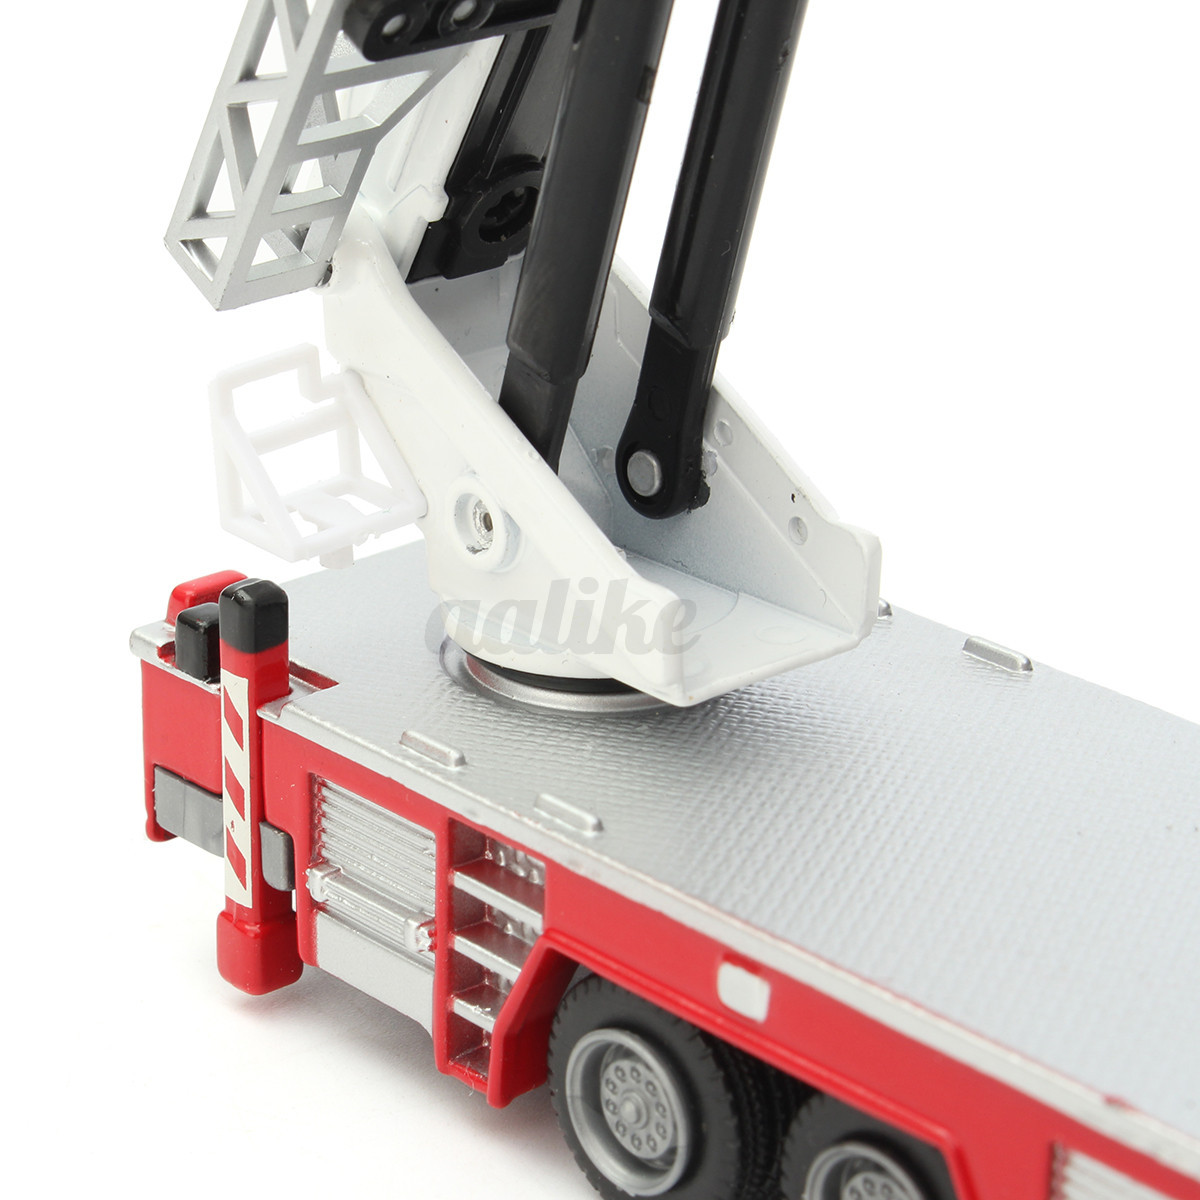 50 diecast aerial fire truck construction vehicle cars model scale